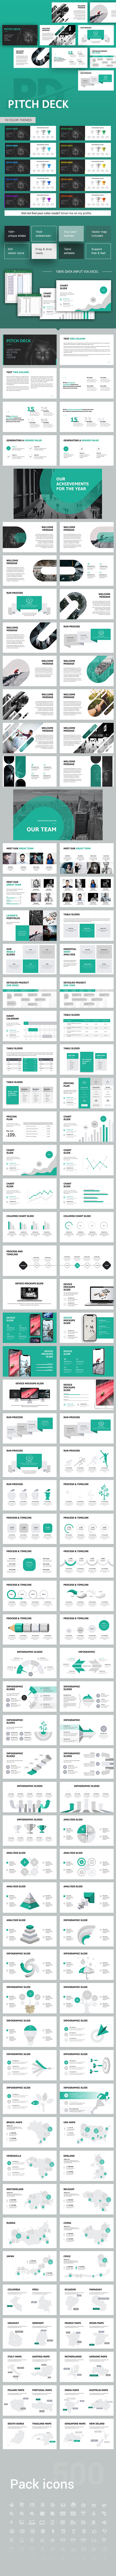 Pitch Deck Corporate PowerPoint Template - Pitch Deck PowerPoint Templates